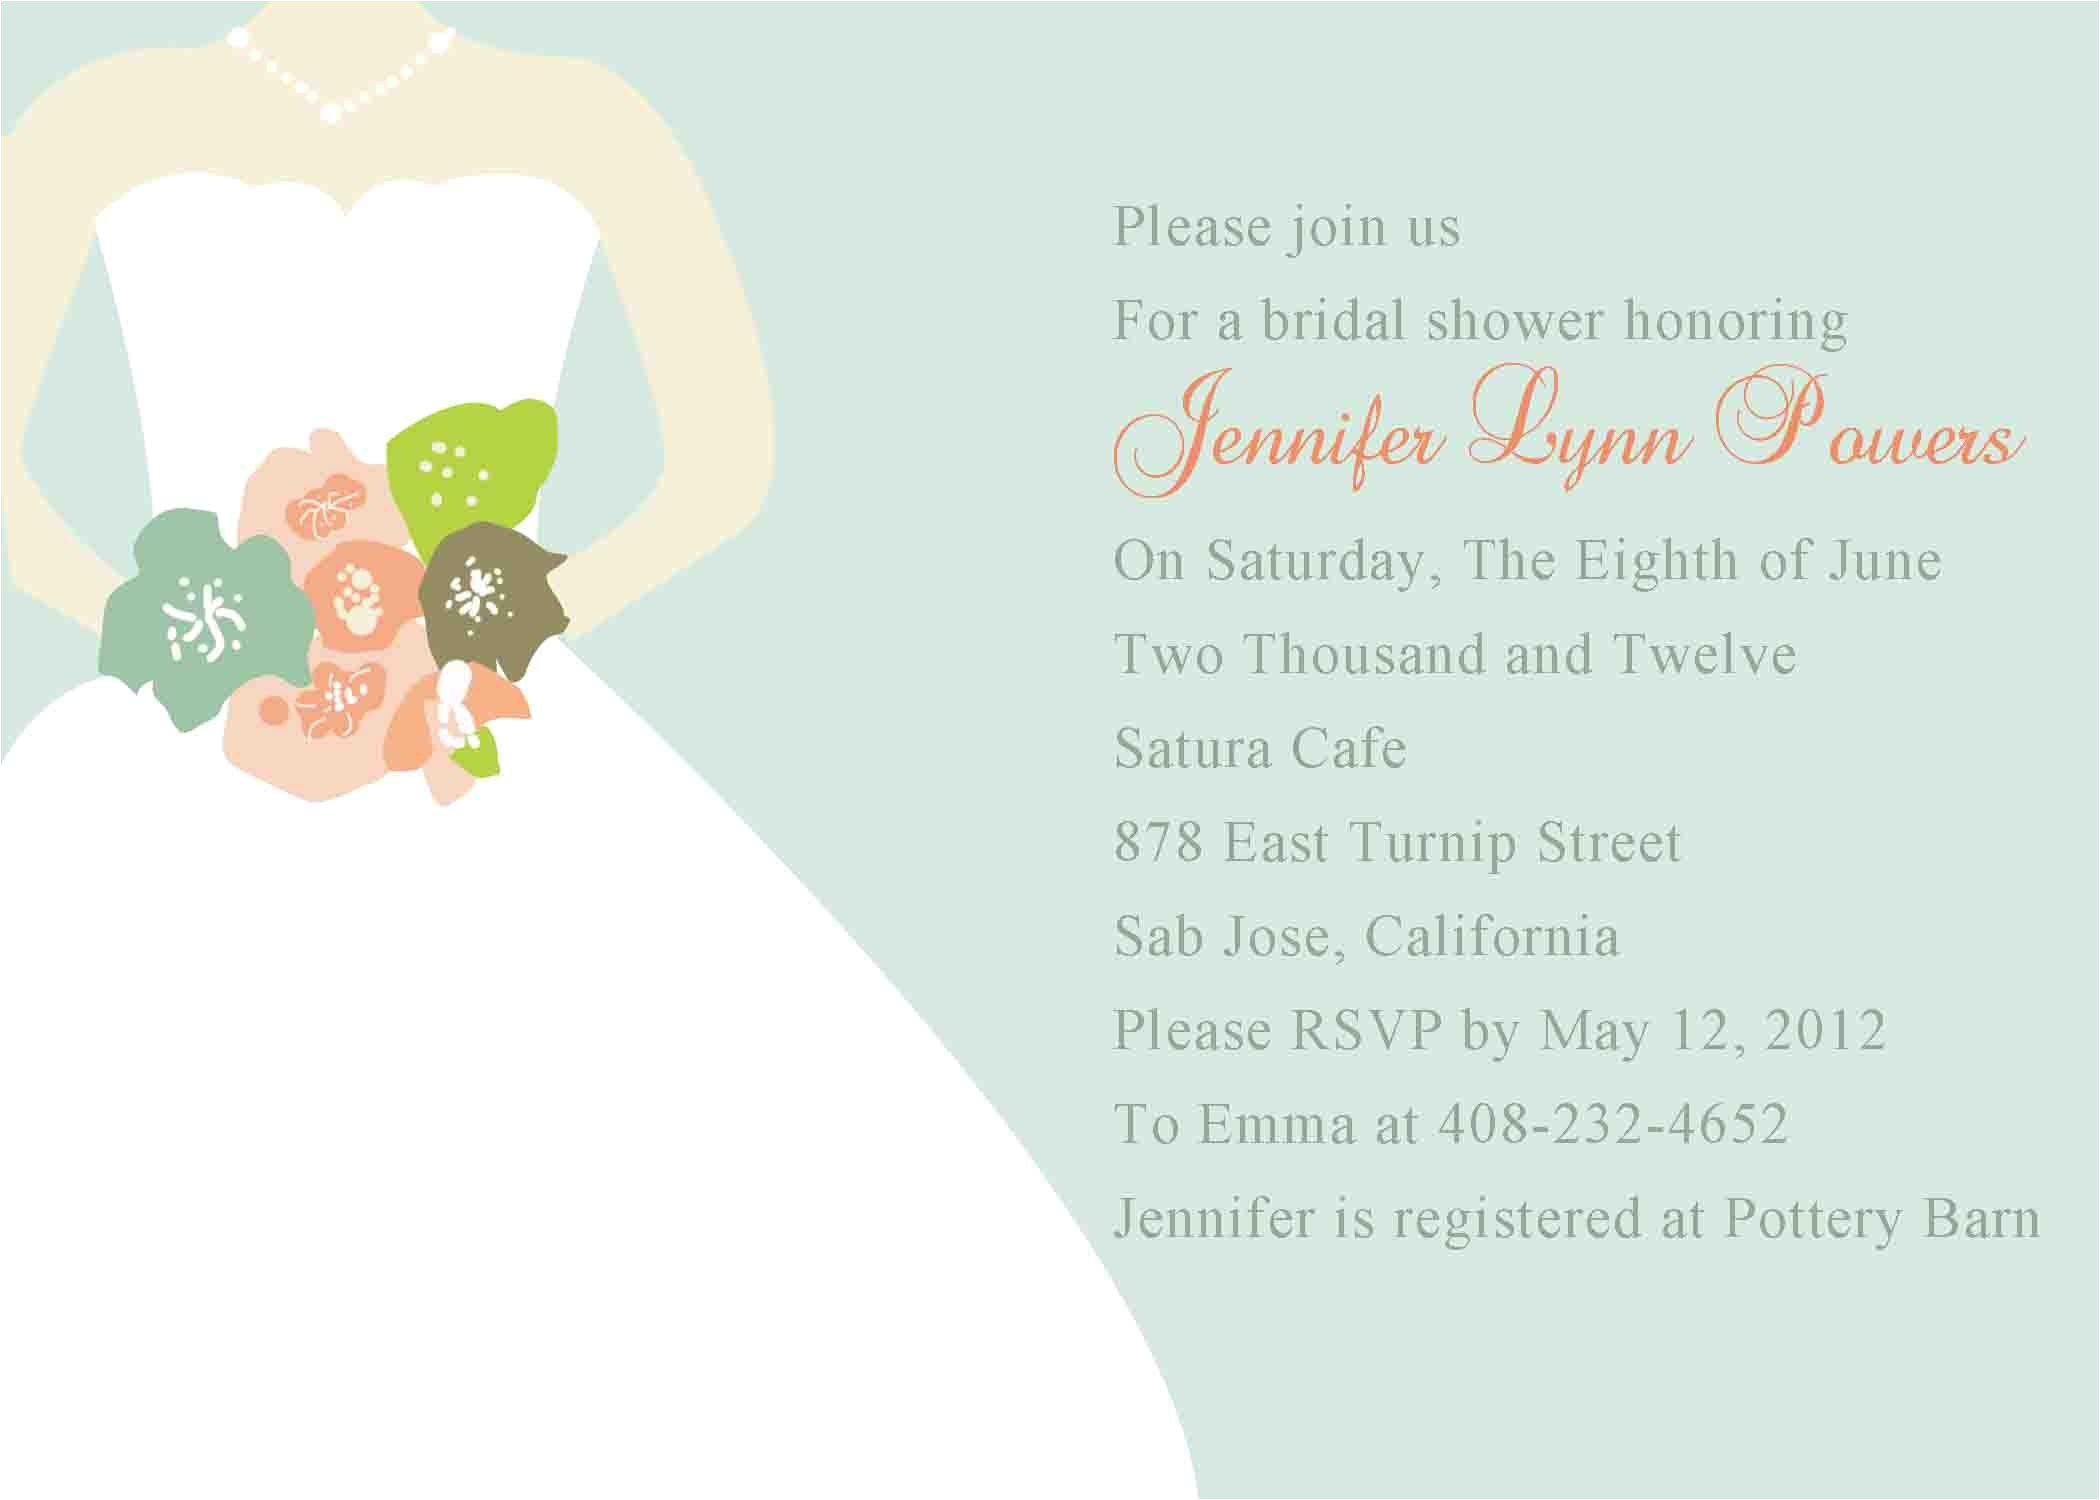 Cheapest Bridal Shower Invitations Cheap Wedding Shower Invitations Cheapest Bridal Shower